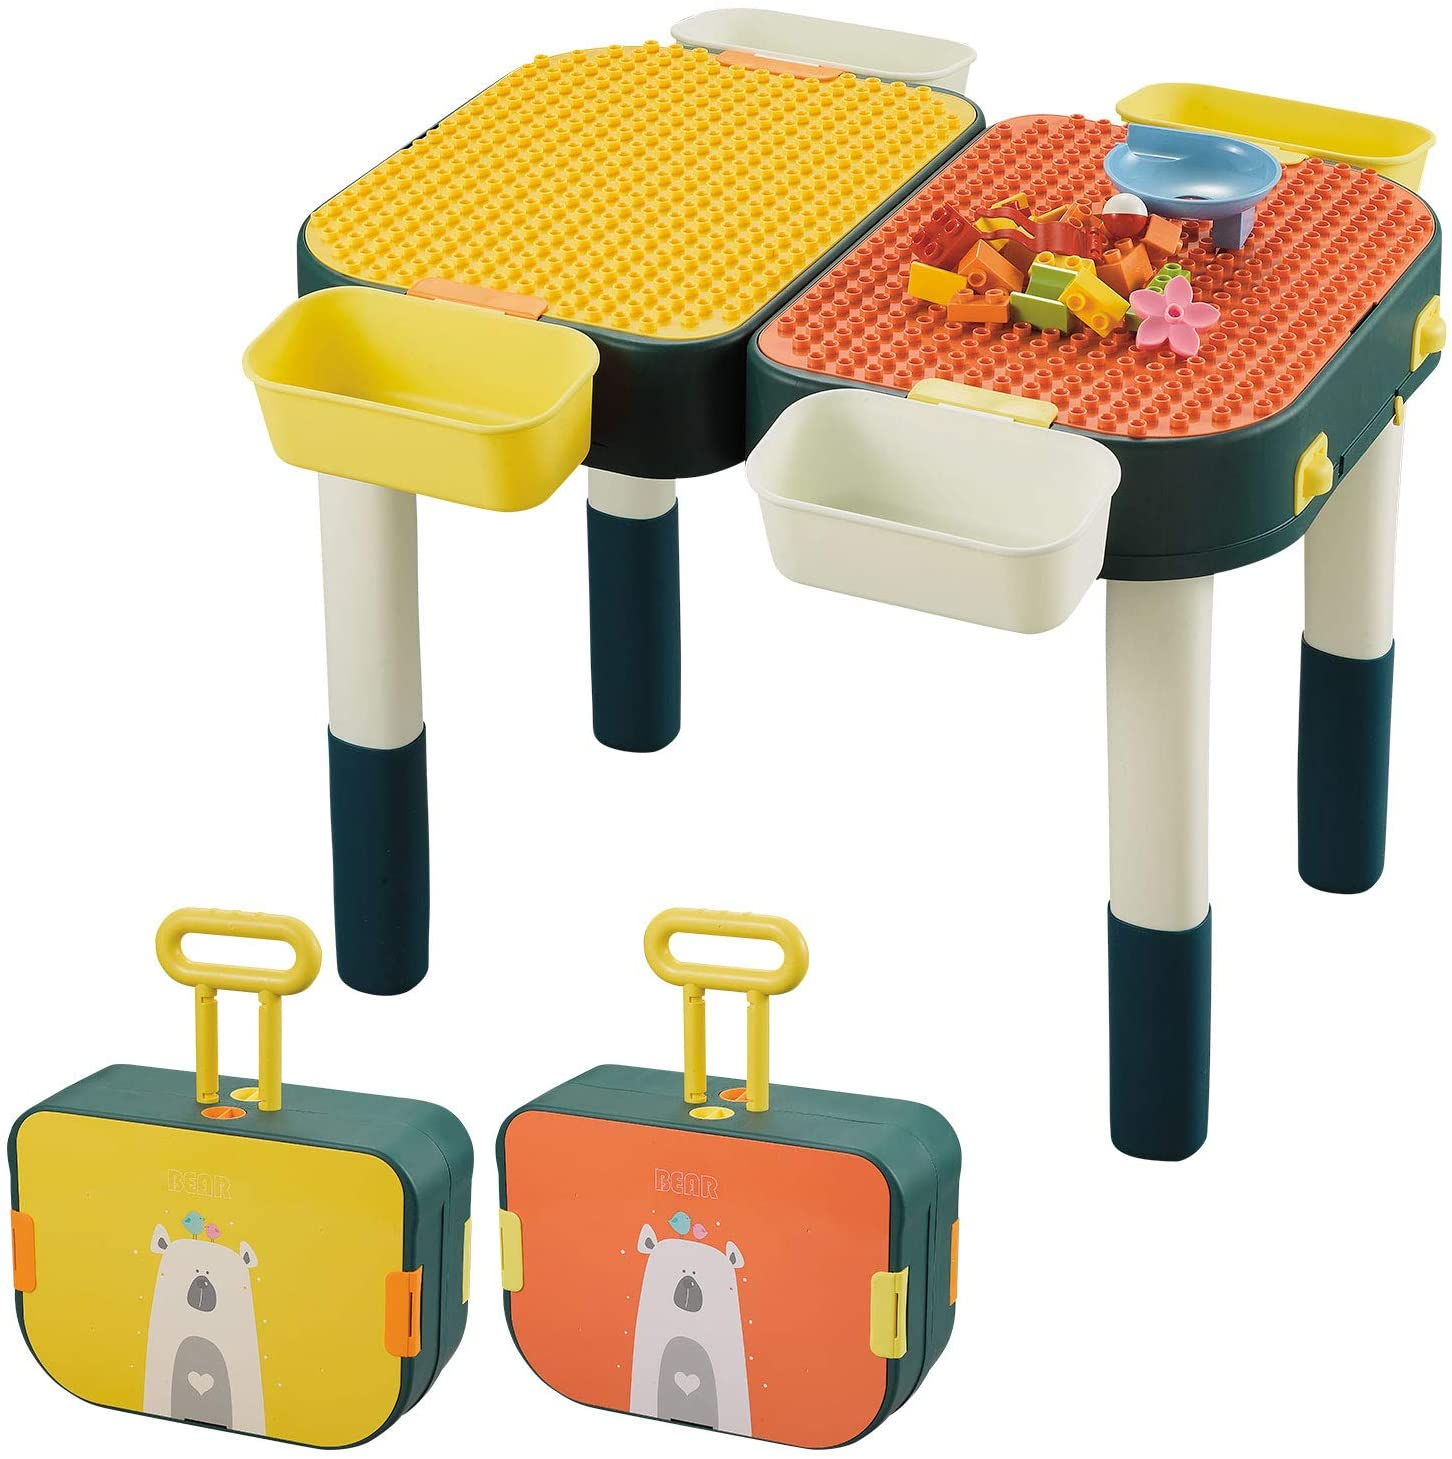 Kids 6-in-1 Multi Activity Desk Building Blocks Compatible Bricks Toy,Learning Desk as Gift,Play Table with Storage